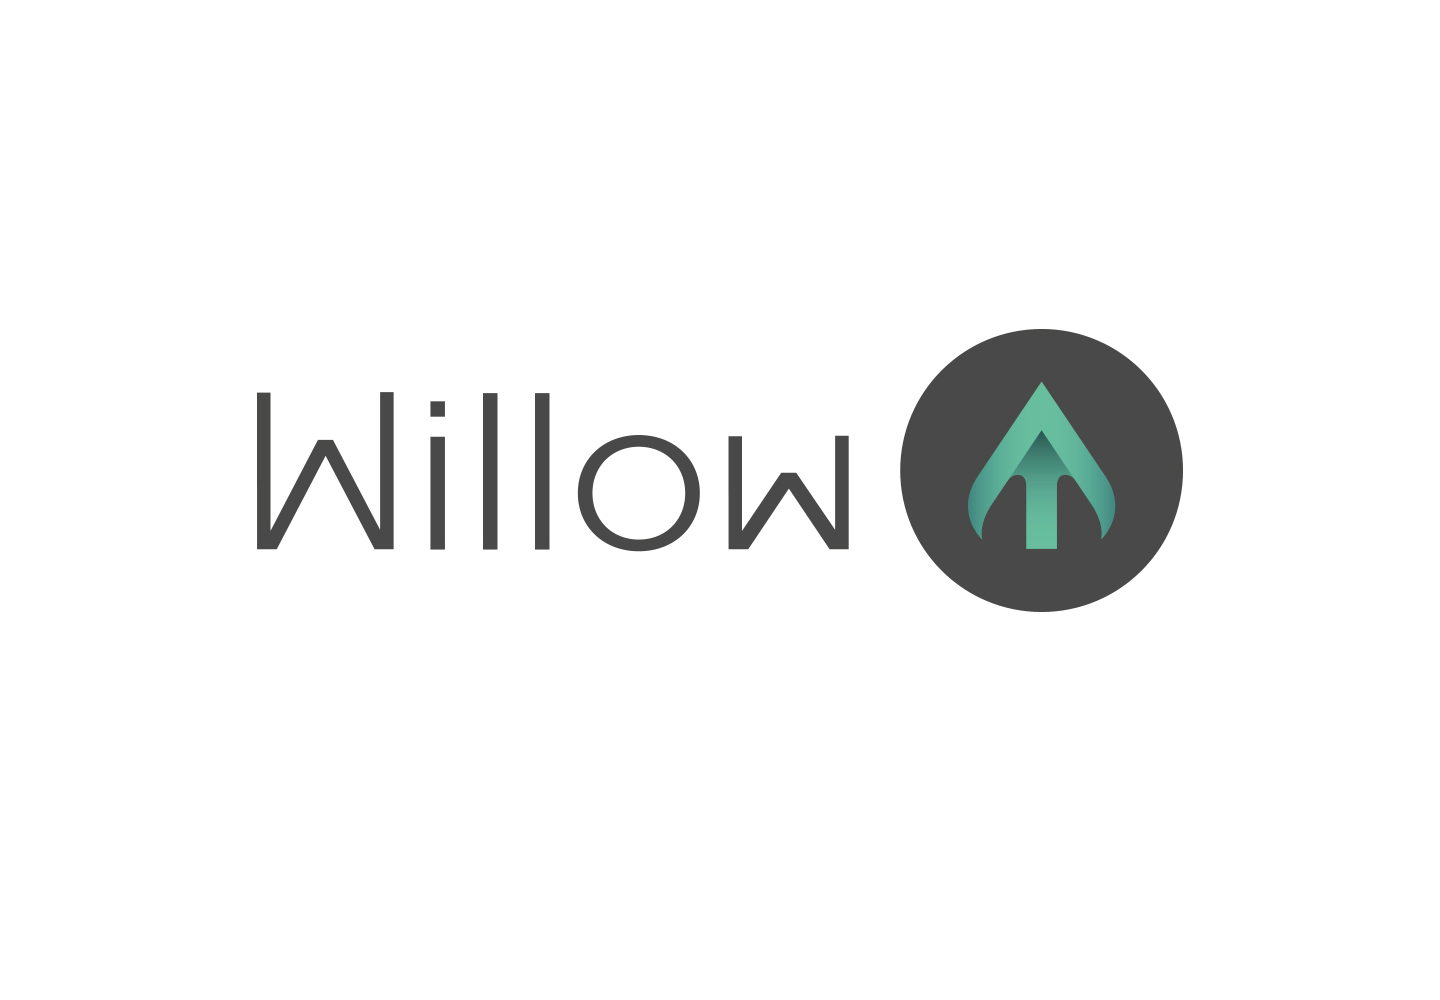 https://rusyndesign.co.uk/wp-content/uploads/2021/02/Branding-Willow.png